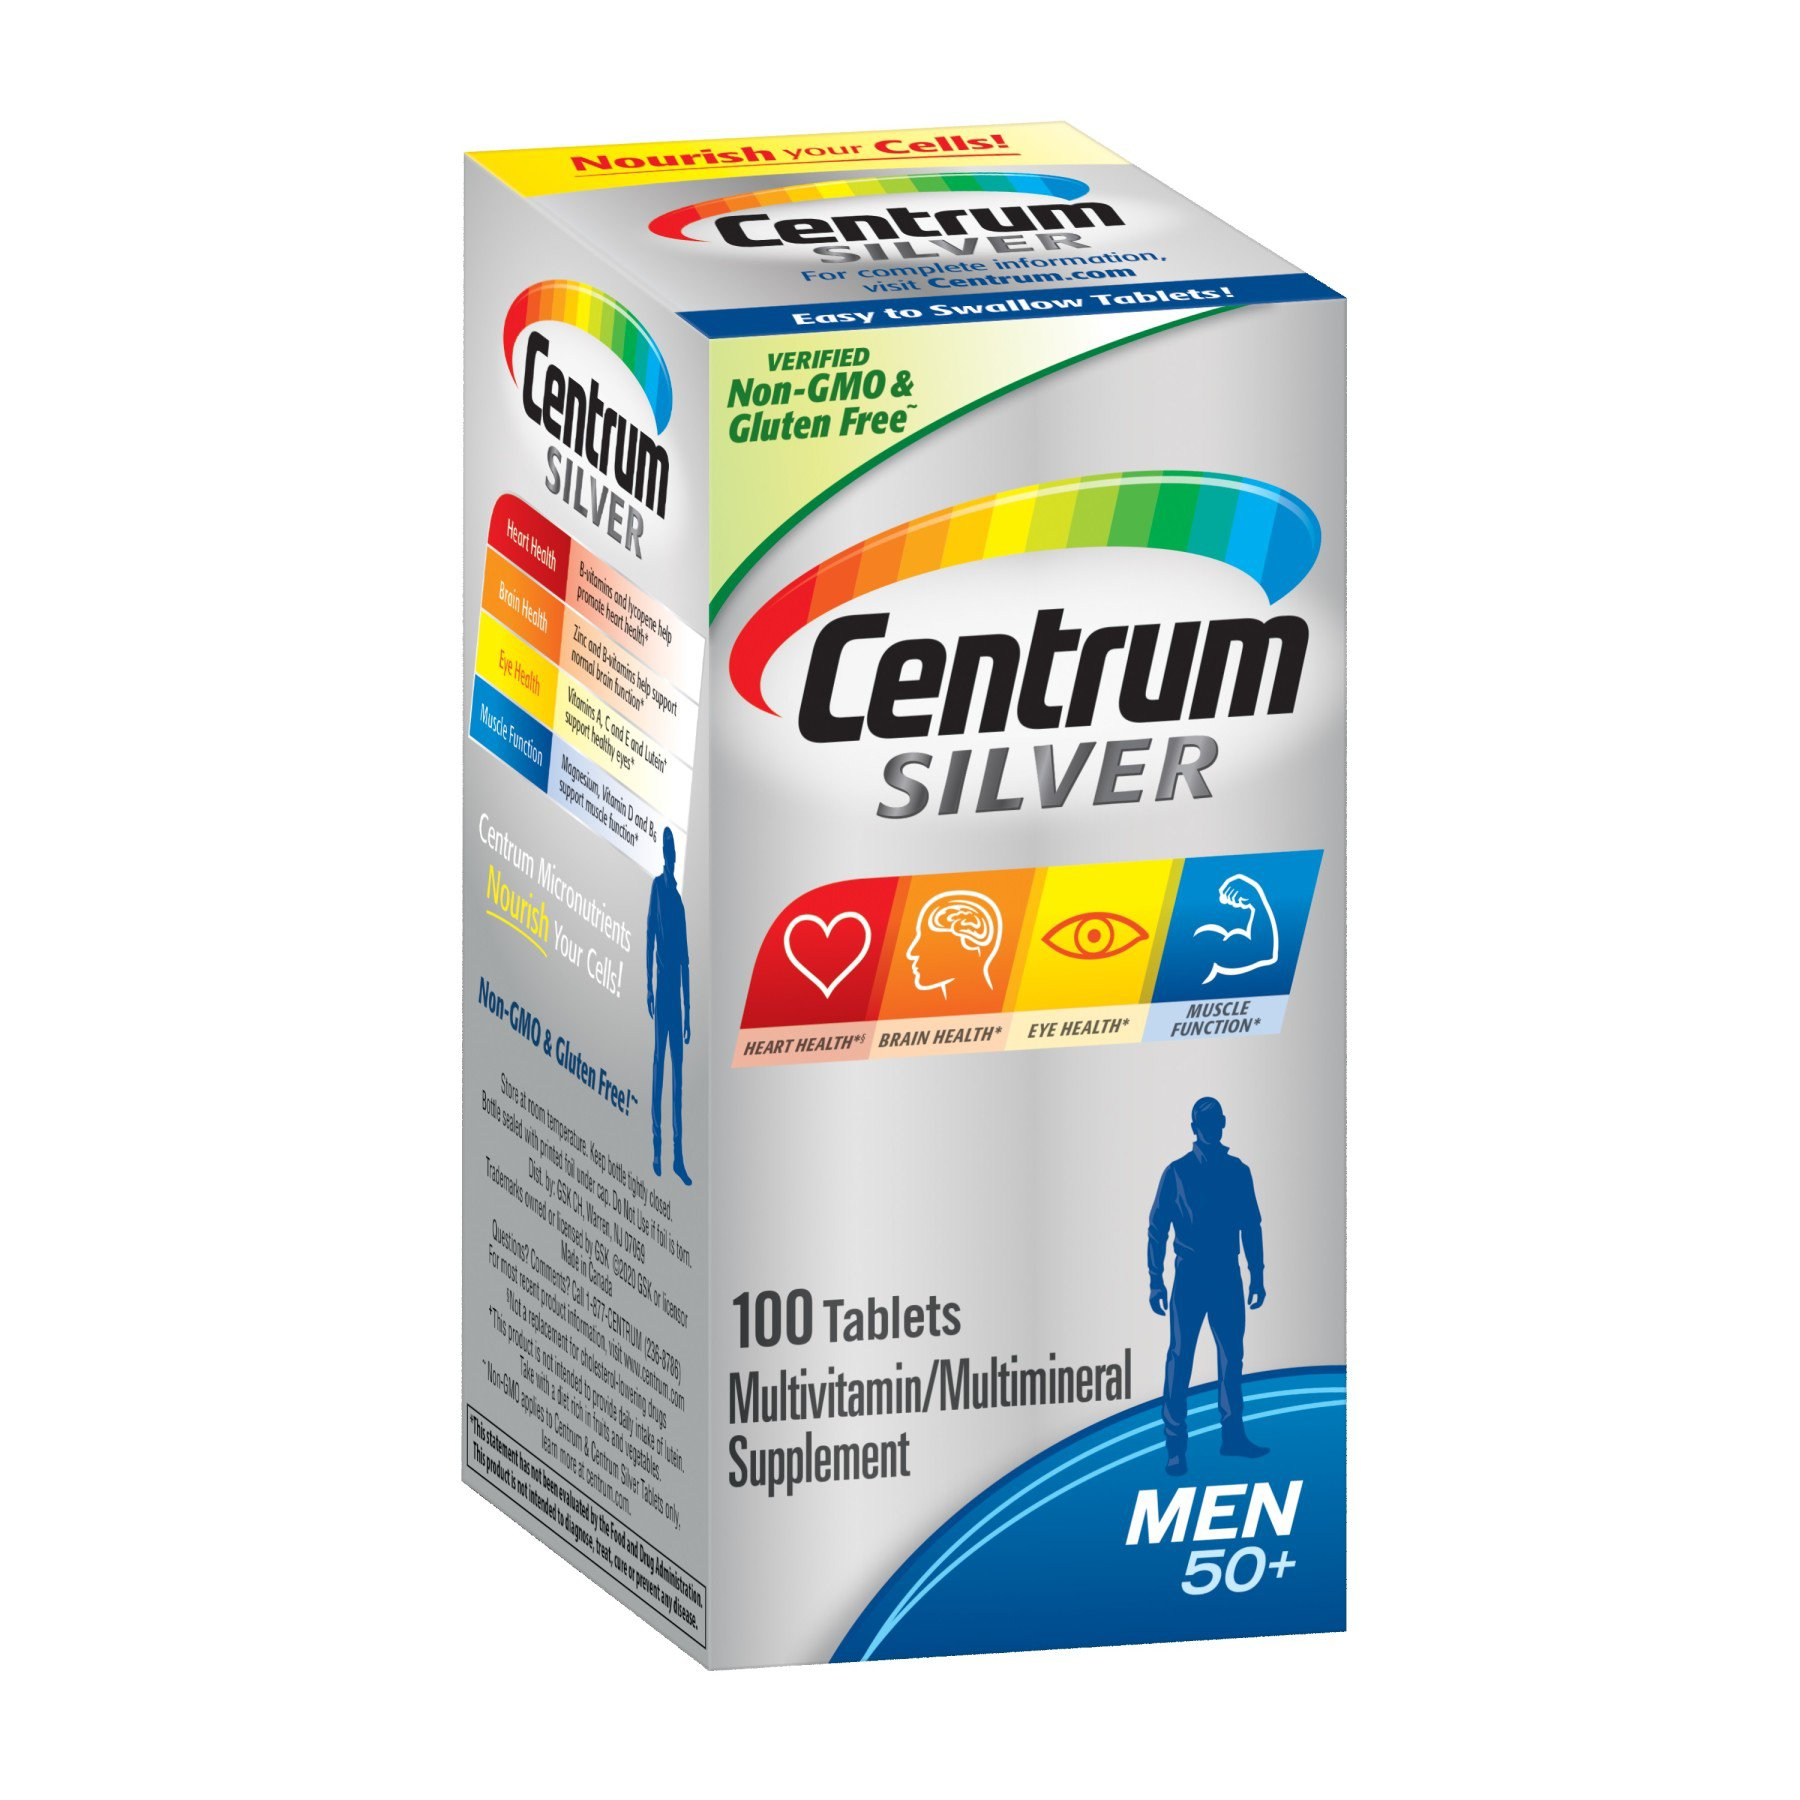 Centrum Silver Multivitamin Multimineral Supplement Personalized For Men 50 Tablets Shop Multivitamins At H E B